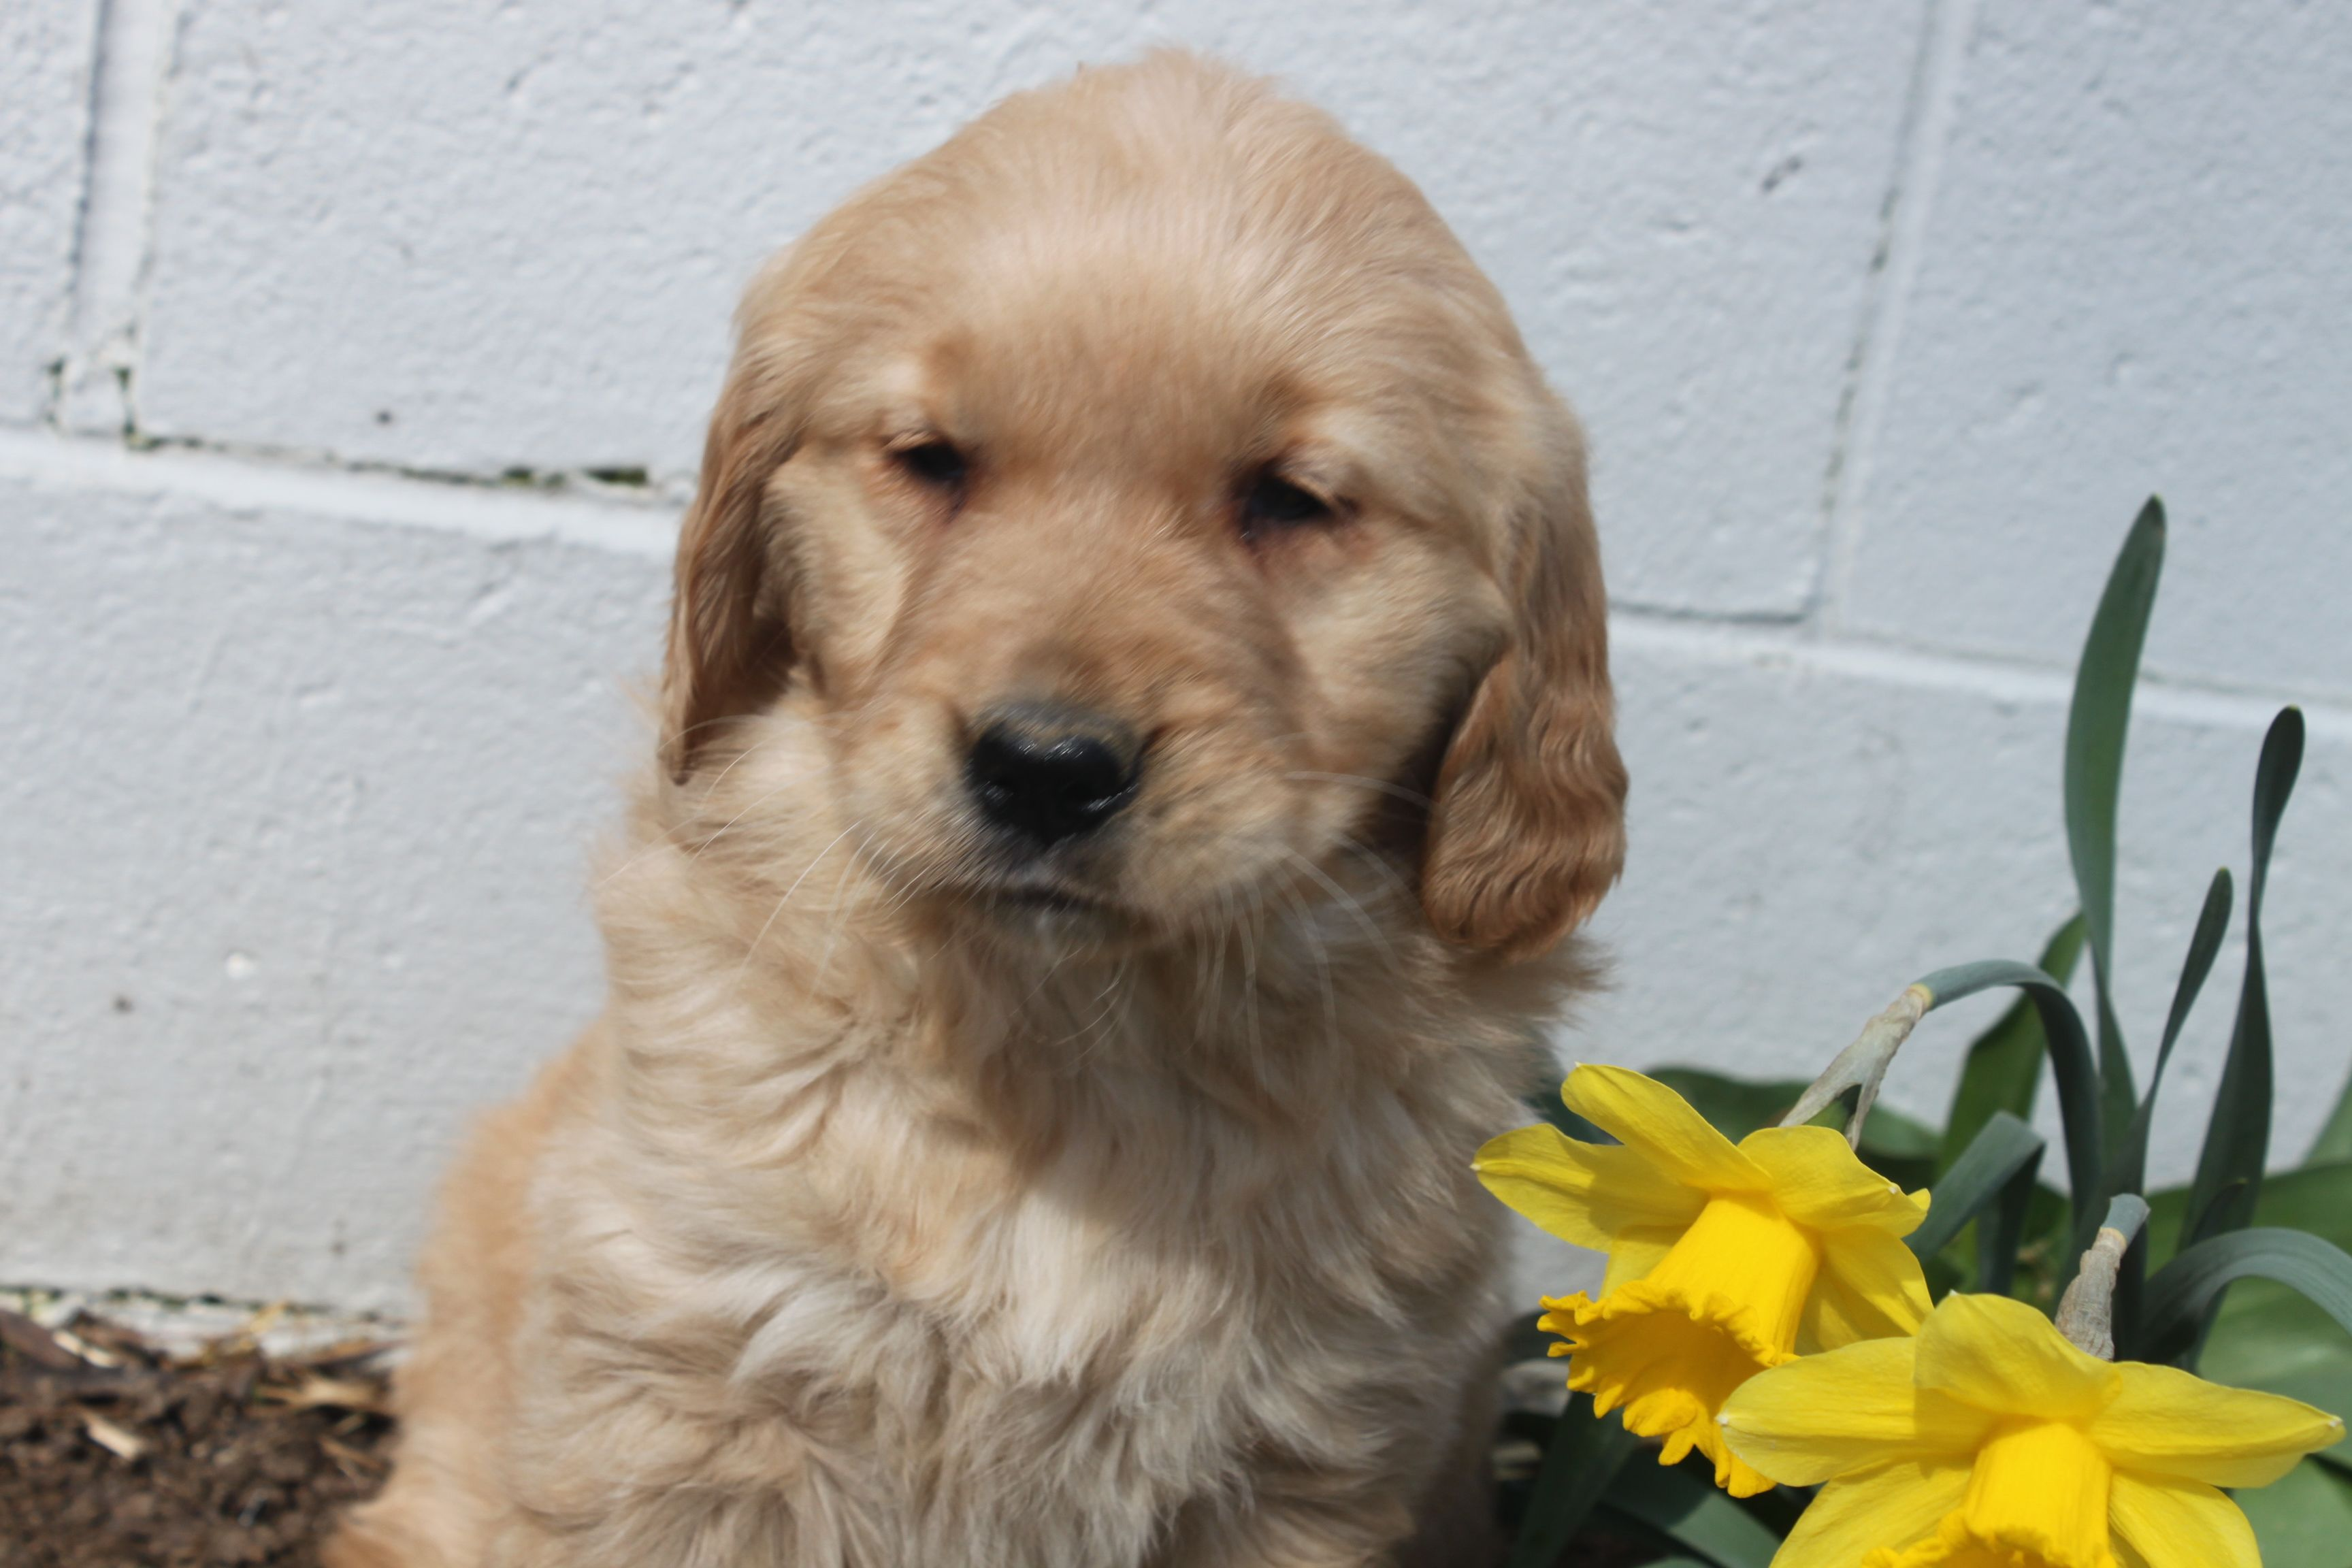 Here is the first female golden retriever puppy posted at